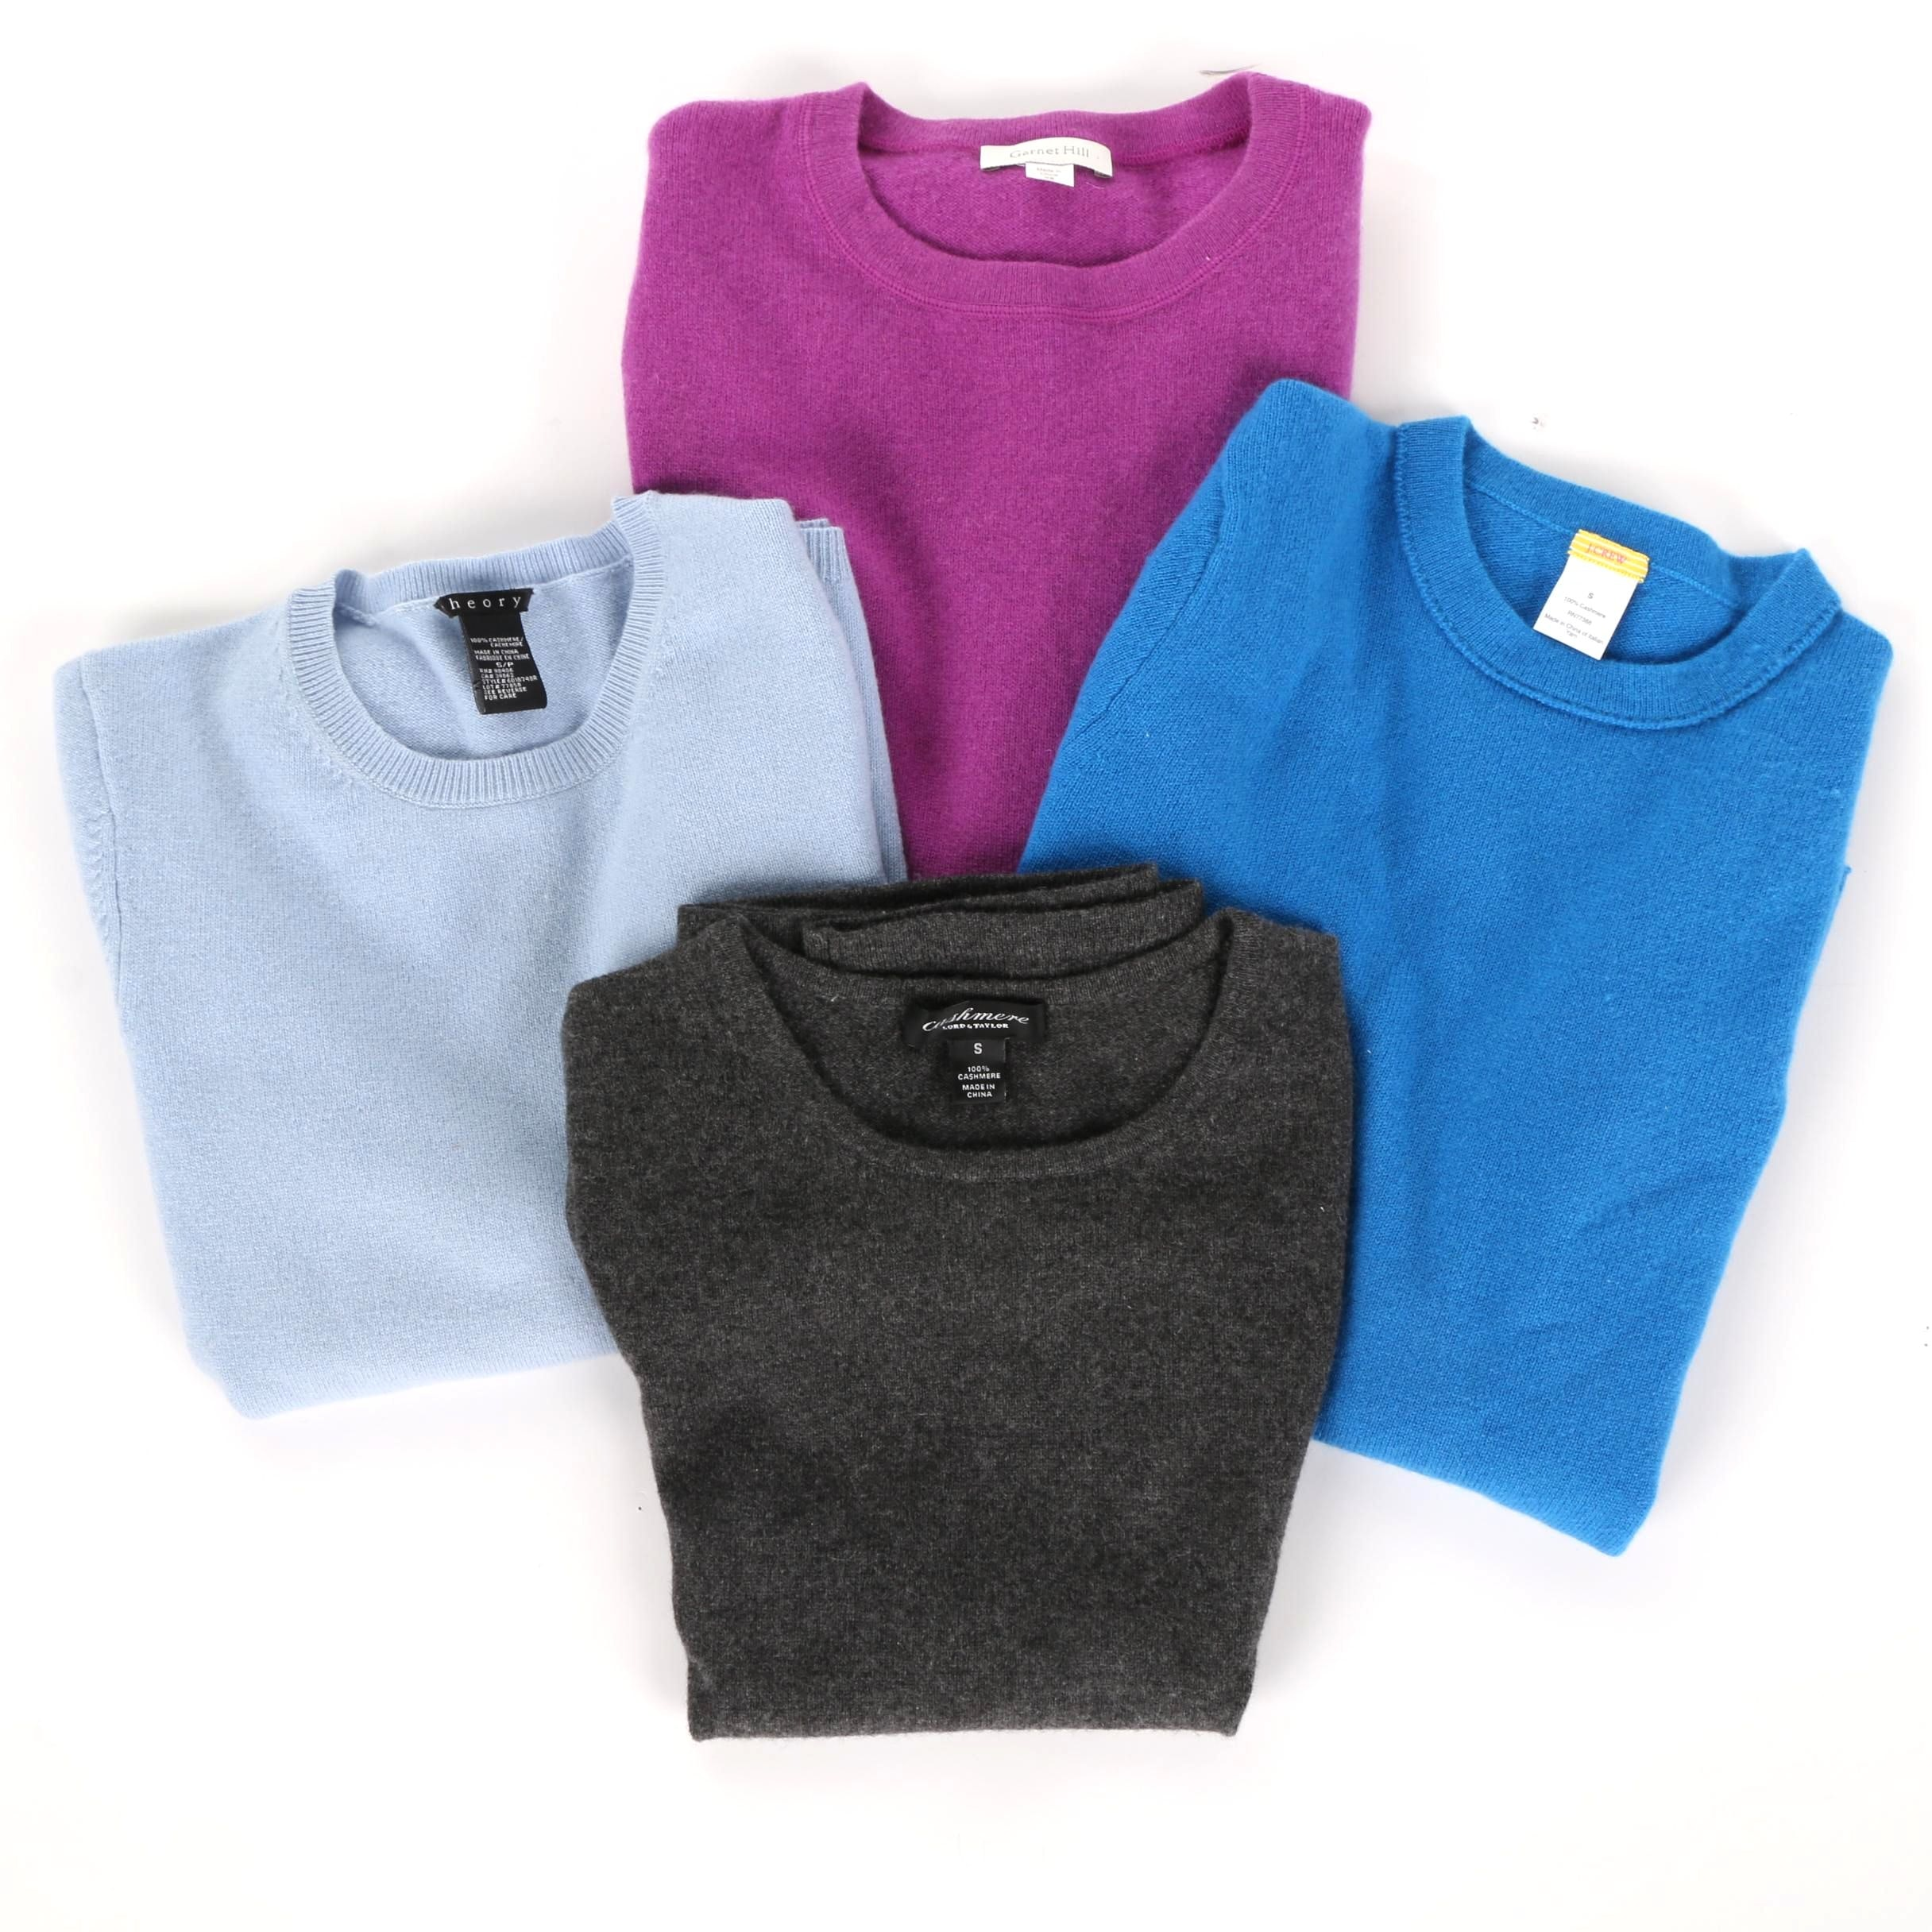 Cashmere Tops Including J. Crew and Theory